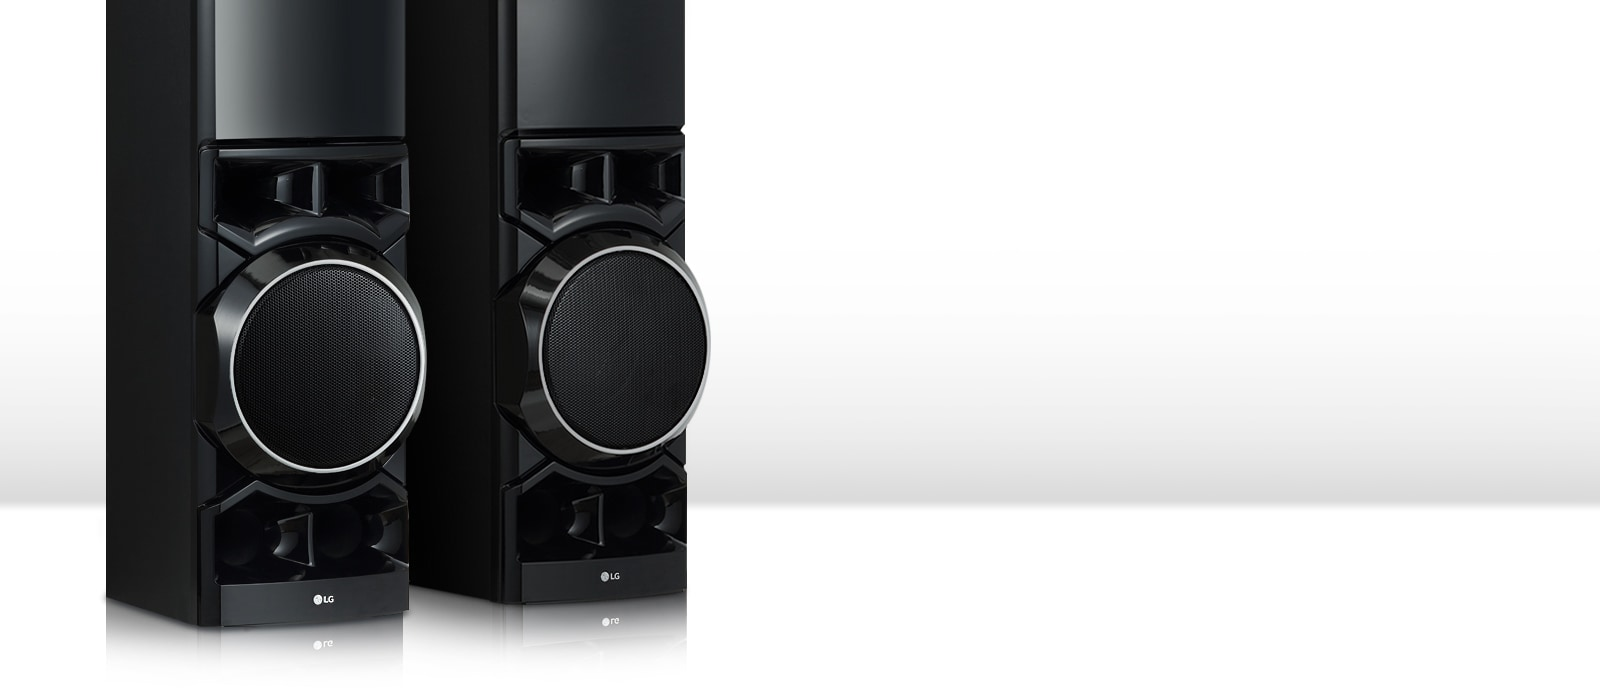 On the white living room, the lower part of the two tower speakers is seen big.